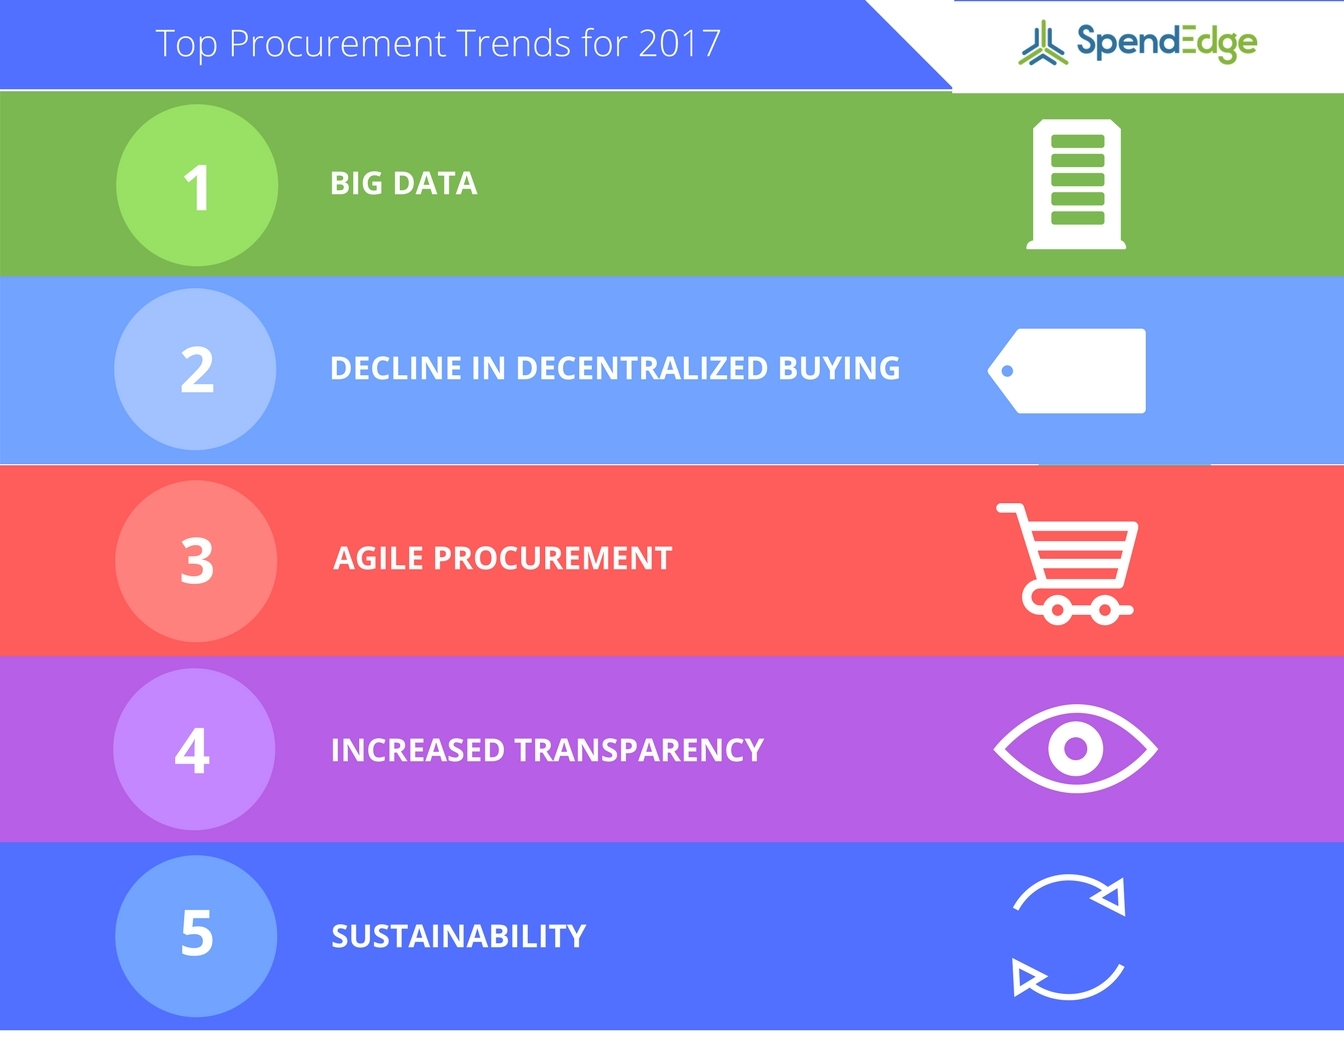 SpendEdge has announced their top 10 procurement trends for 2017. (Graphic: Business Wire)